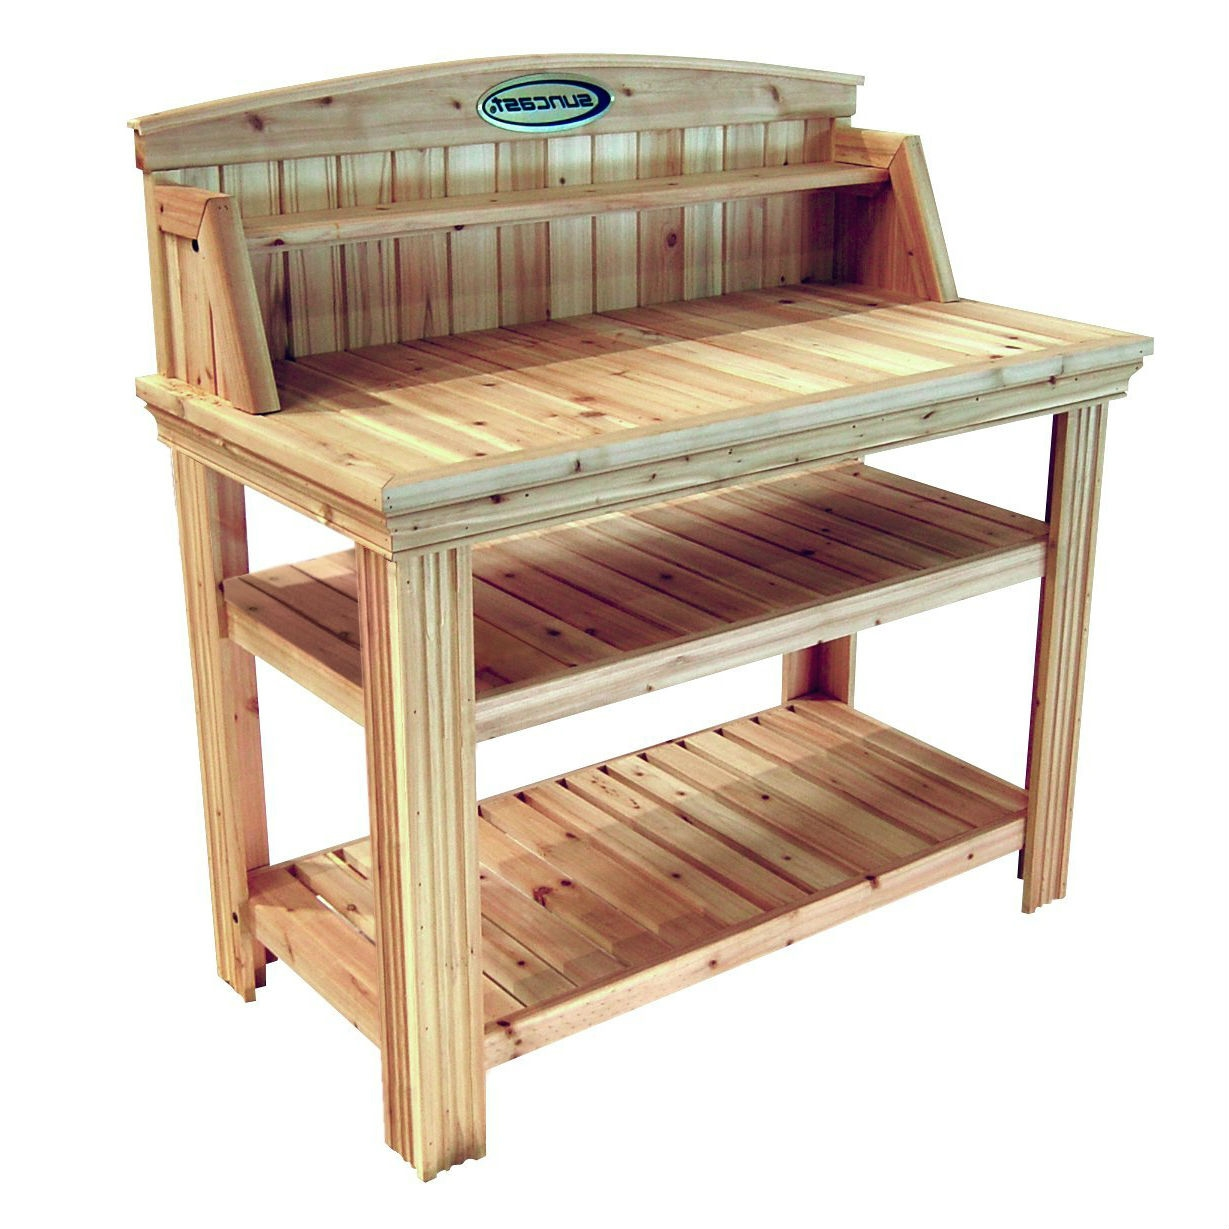 Sensational Natural Cedar Wood Potting Bench Garden Work Table With Shelves Andrewgaddart Wooden Chair Designs For Living Room Andrewgaddartcom